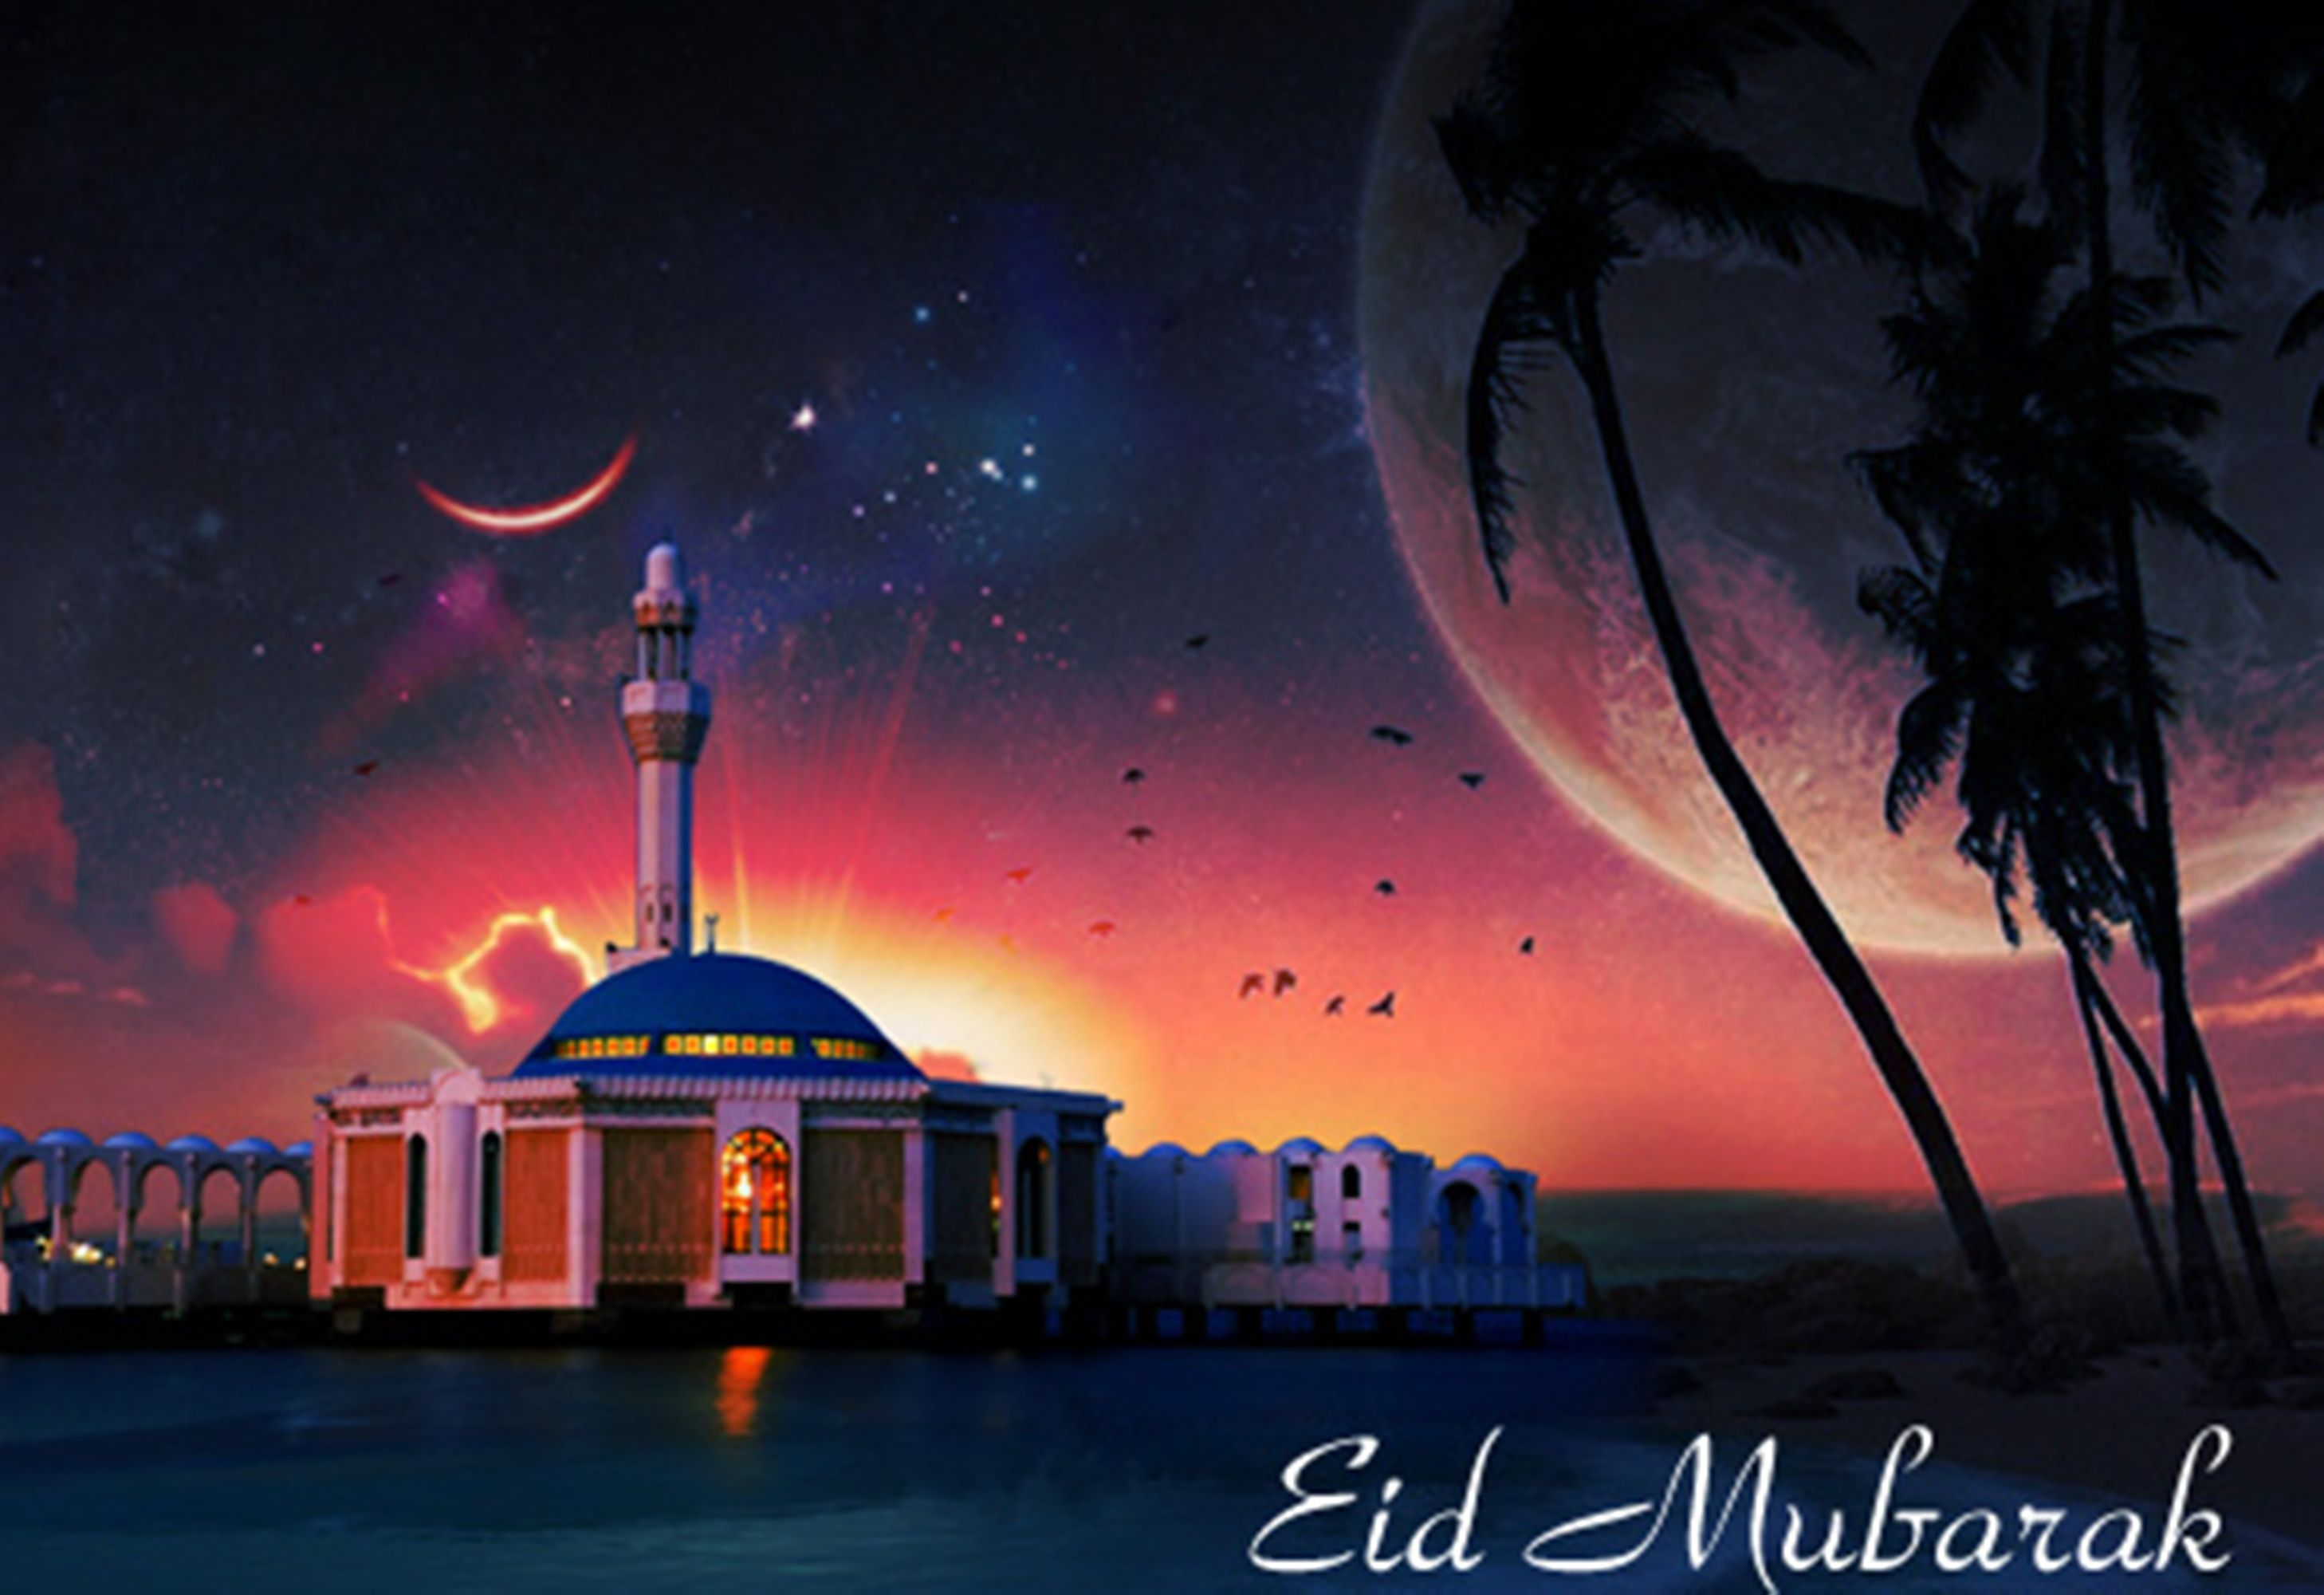 Eid card for facebook free download 2014 places to visit eid card for facebook free download 2014 kristyandbryce Image collections